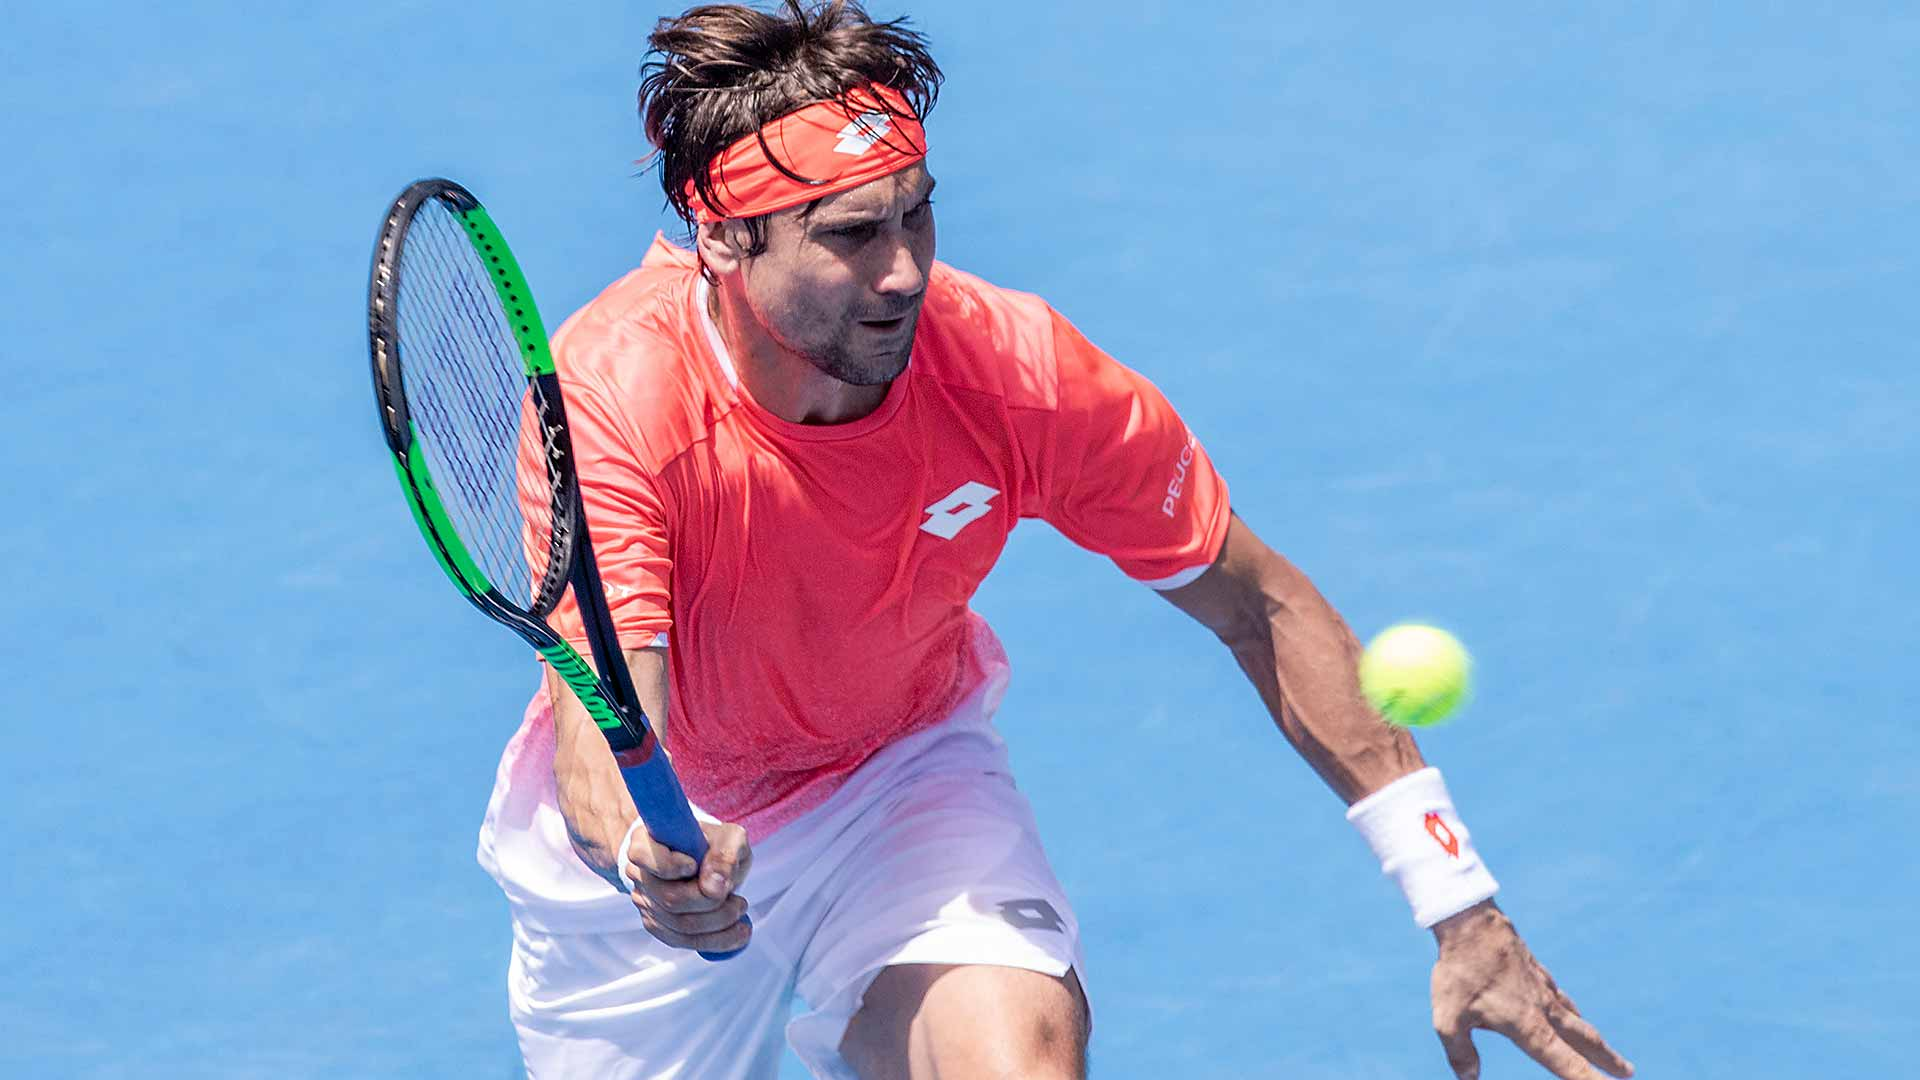 David Ferrer playing at the ASB Classic in Auckland